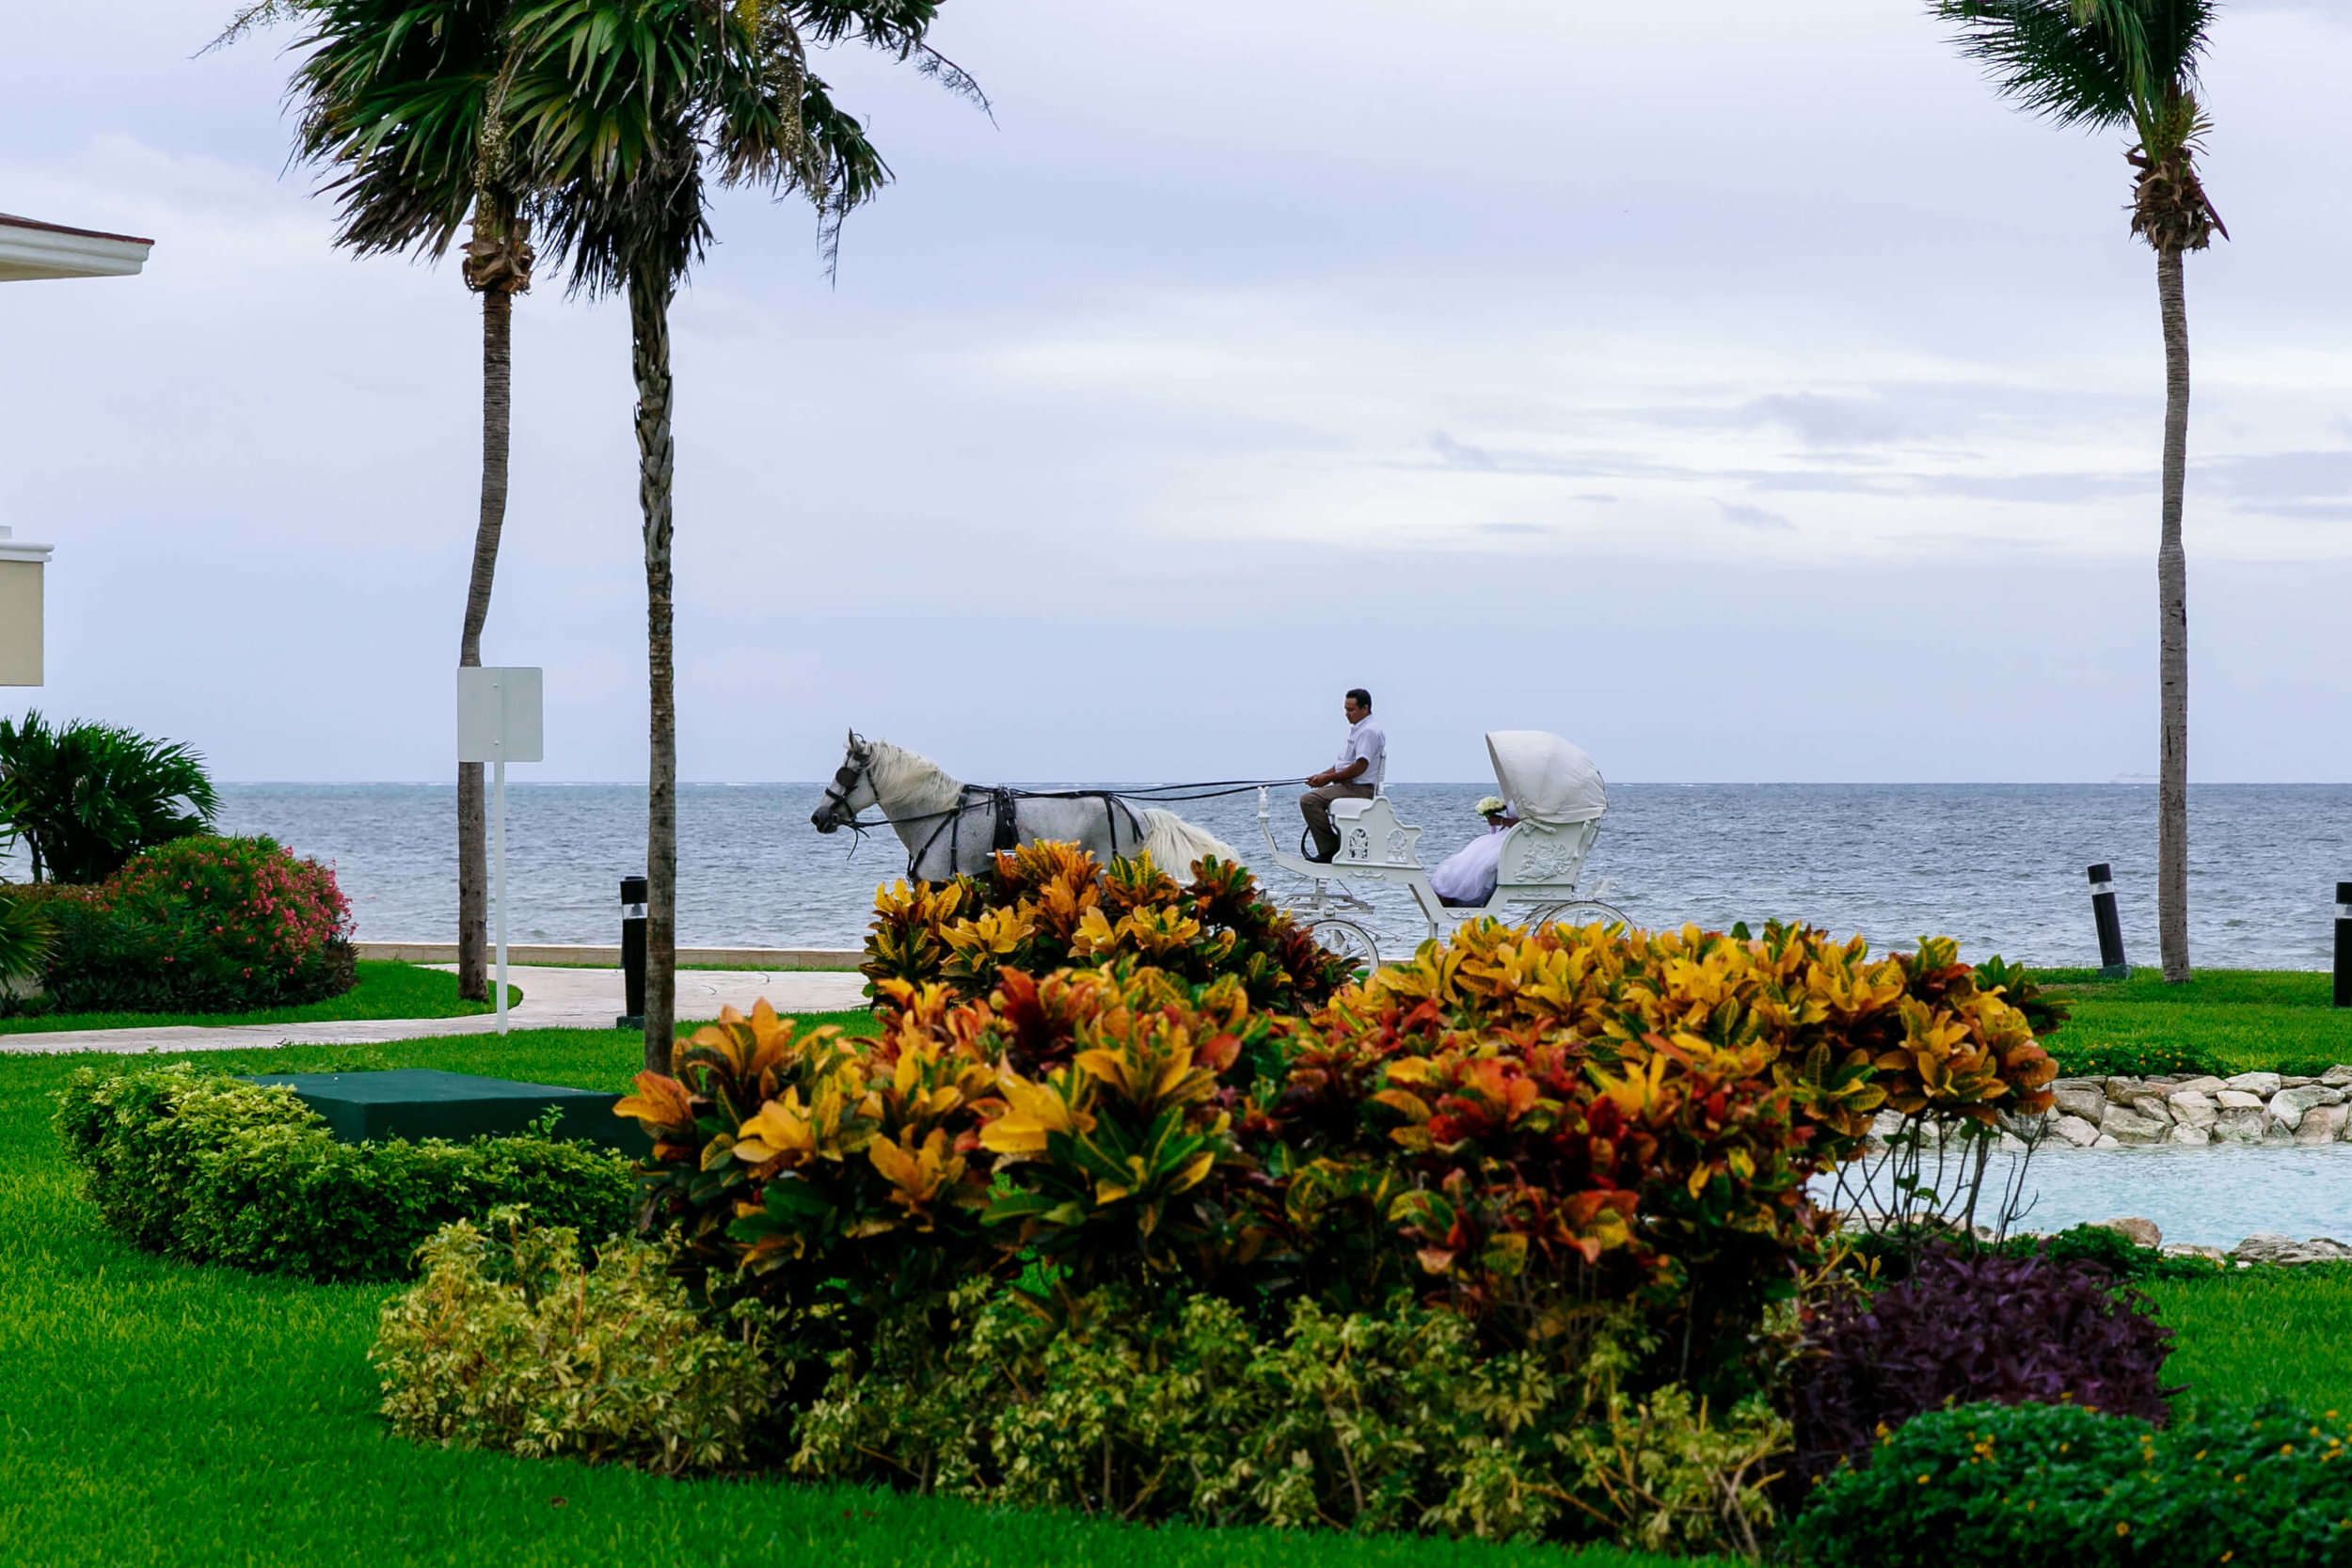 tressa-how-to-plan-a-destination-wedding-in-cancun-mexico-moon-palace-resort-black-destination-bride-destiland-desti-guide-to-destination-weddings-beach-wedding-horse-carriage-1.jpg